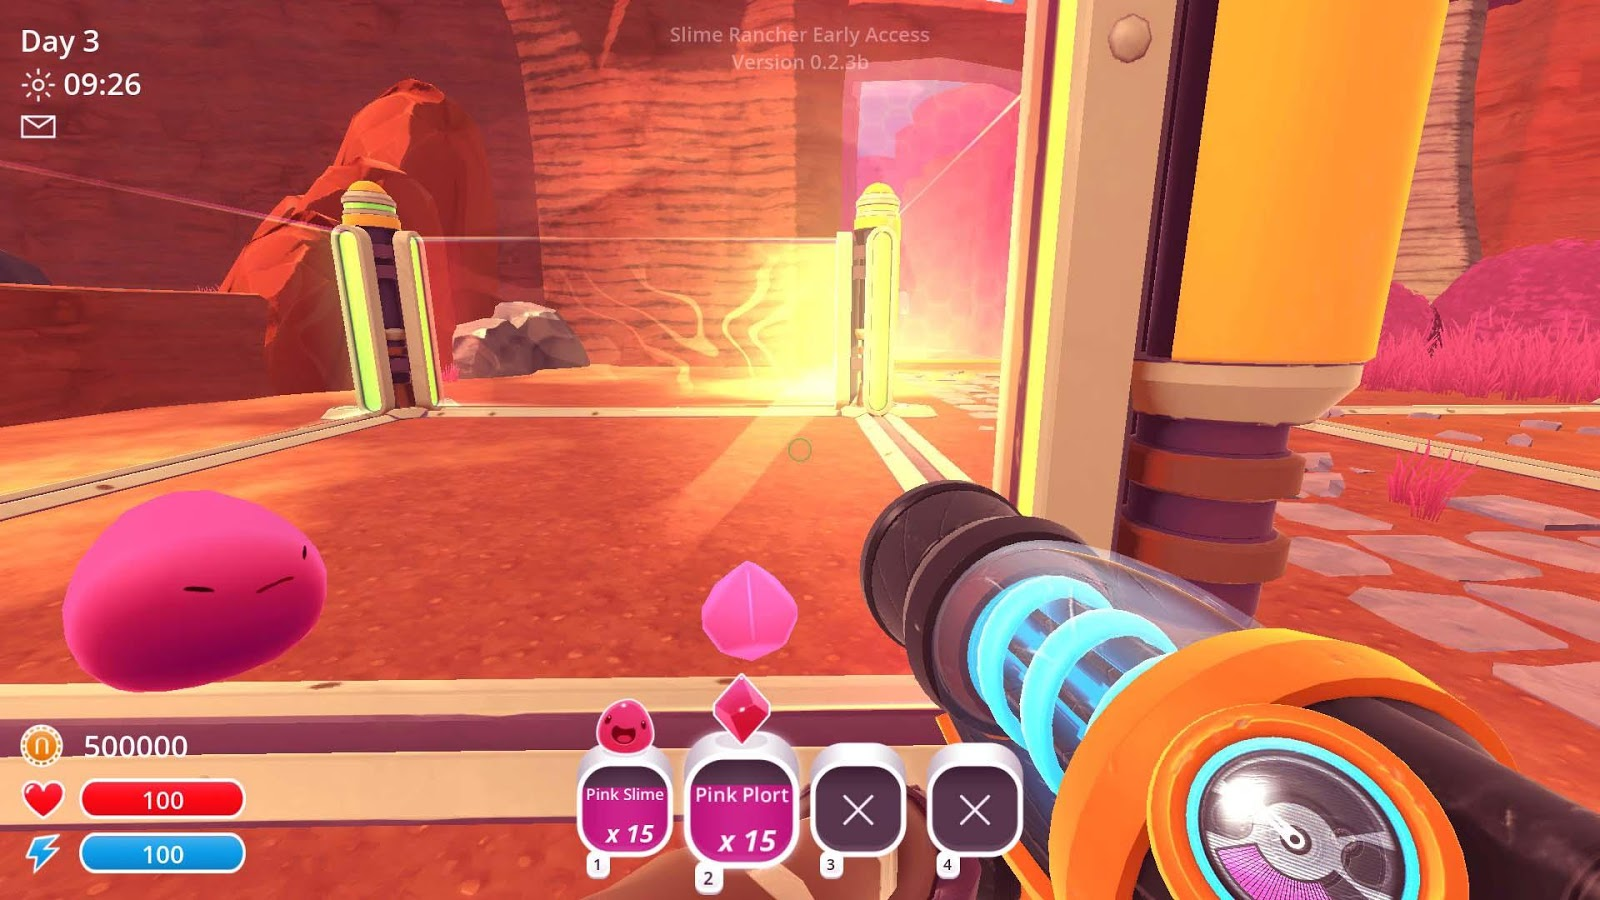 Guide Slime Rancher Pro Gamr 1 0 APK Download - Android